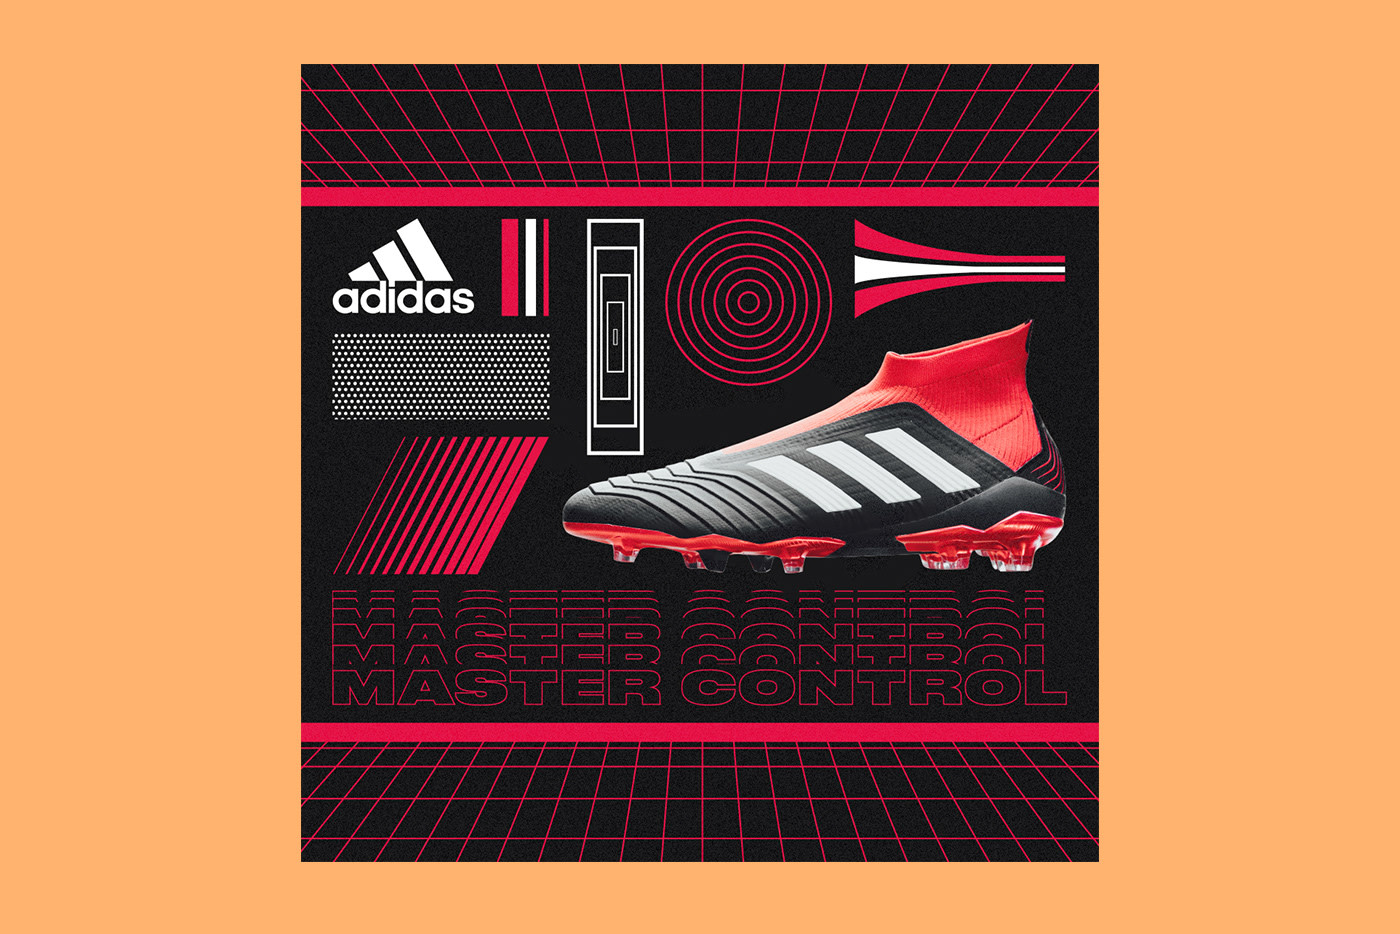 Adidas: Graphic Design, Illustration and advertising